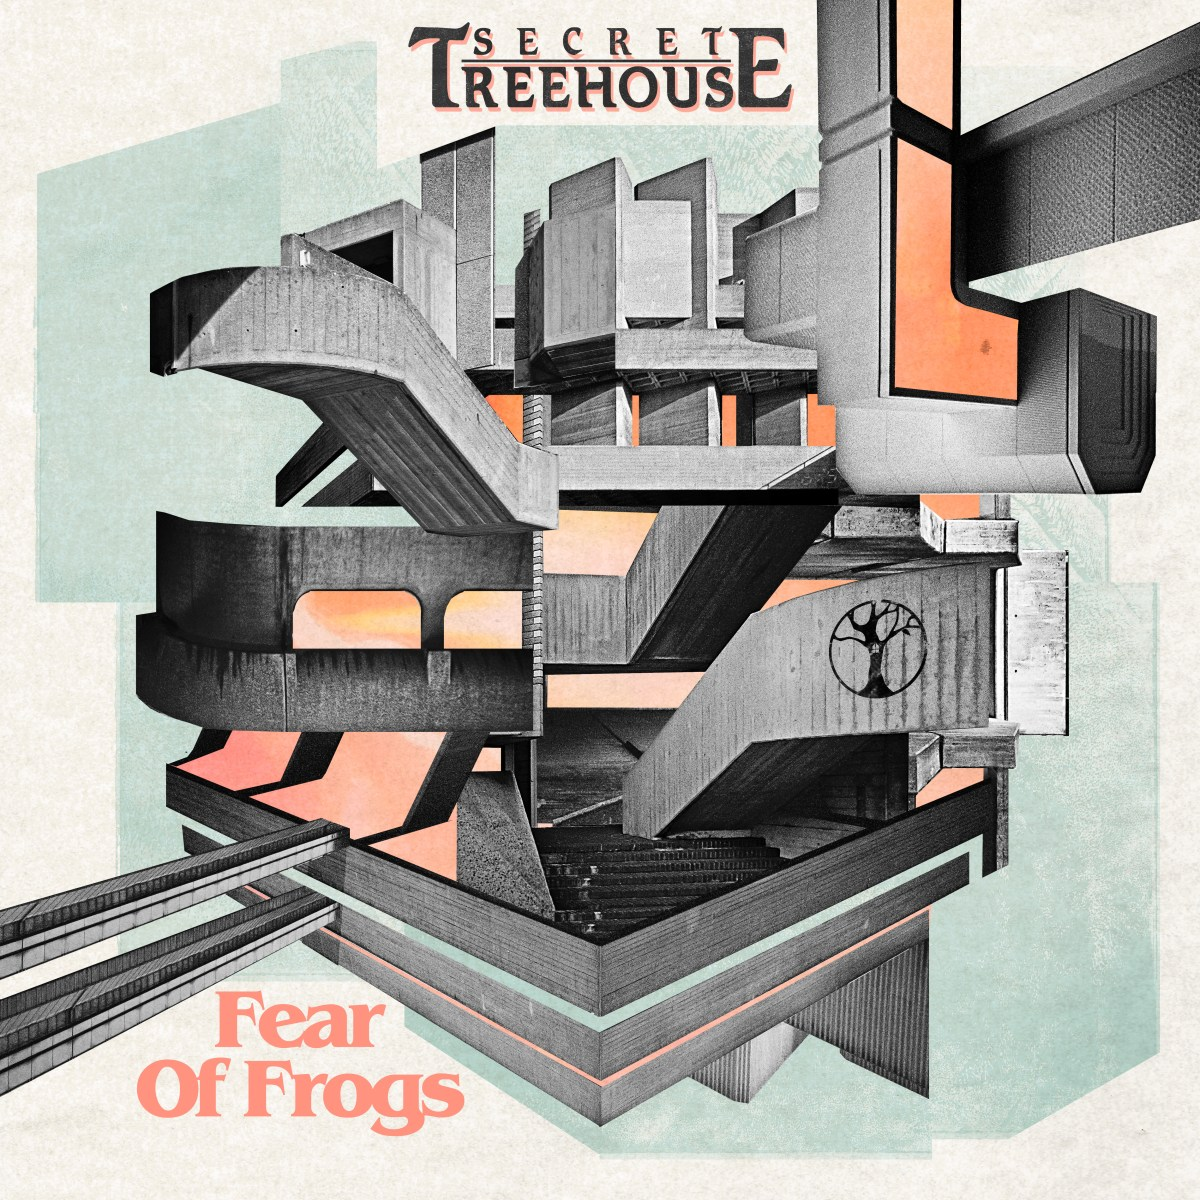 Interview with Secret Treehouse – Fear of Frogs